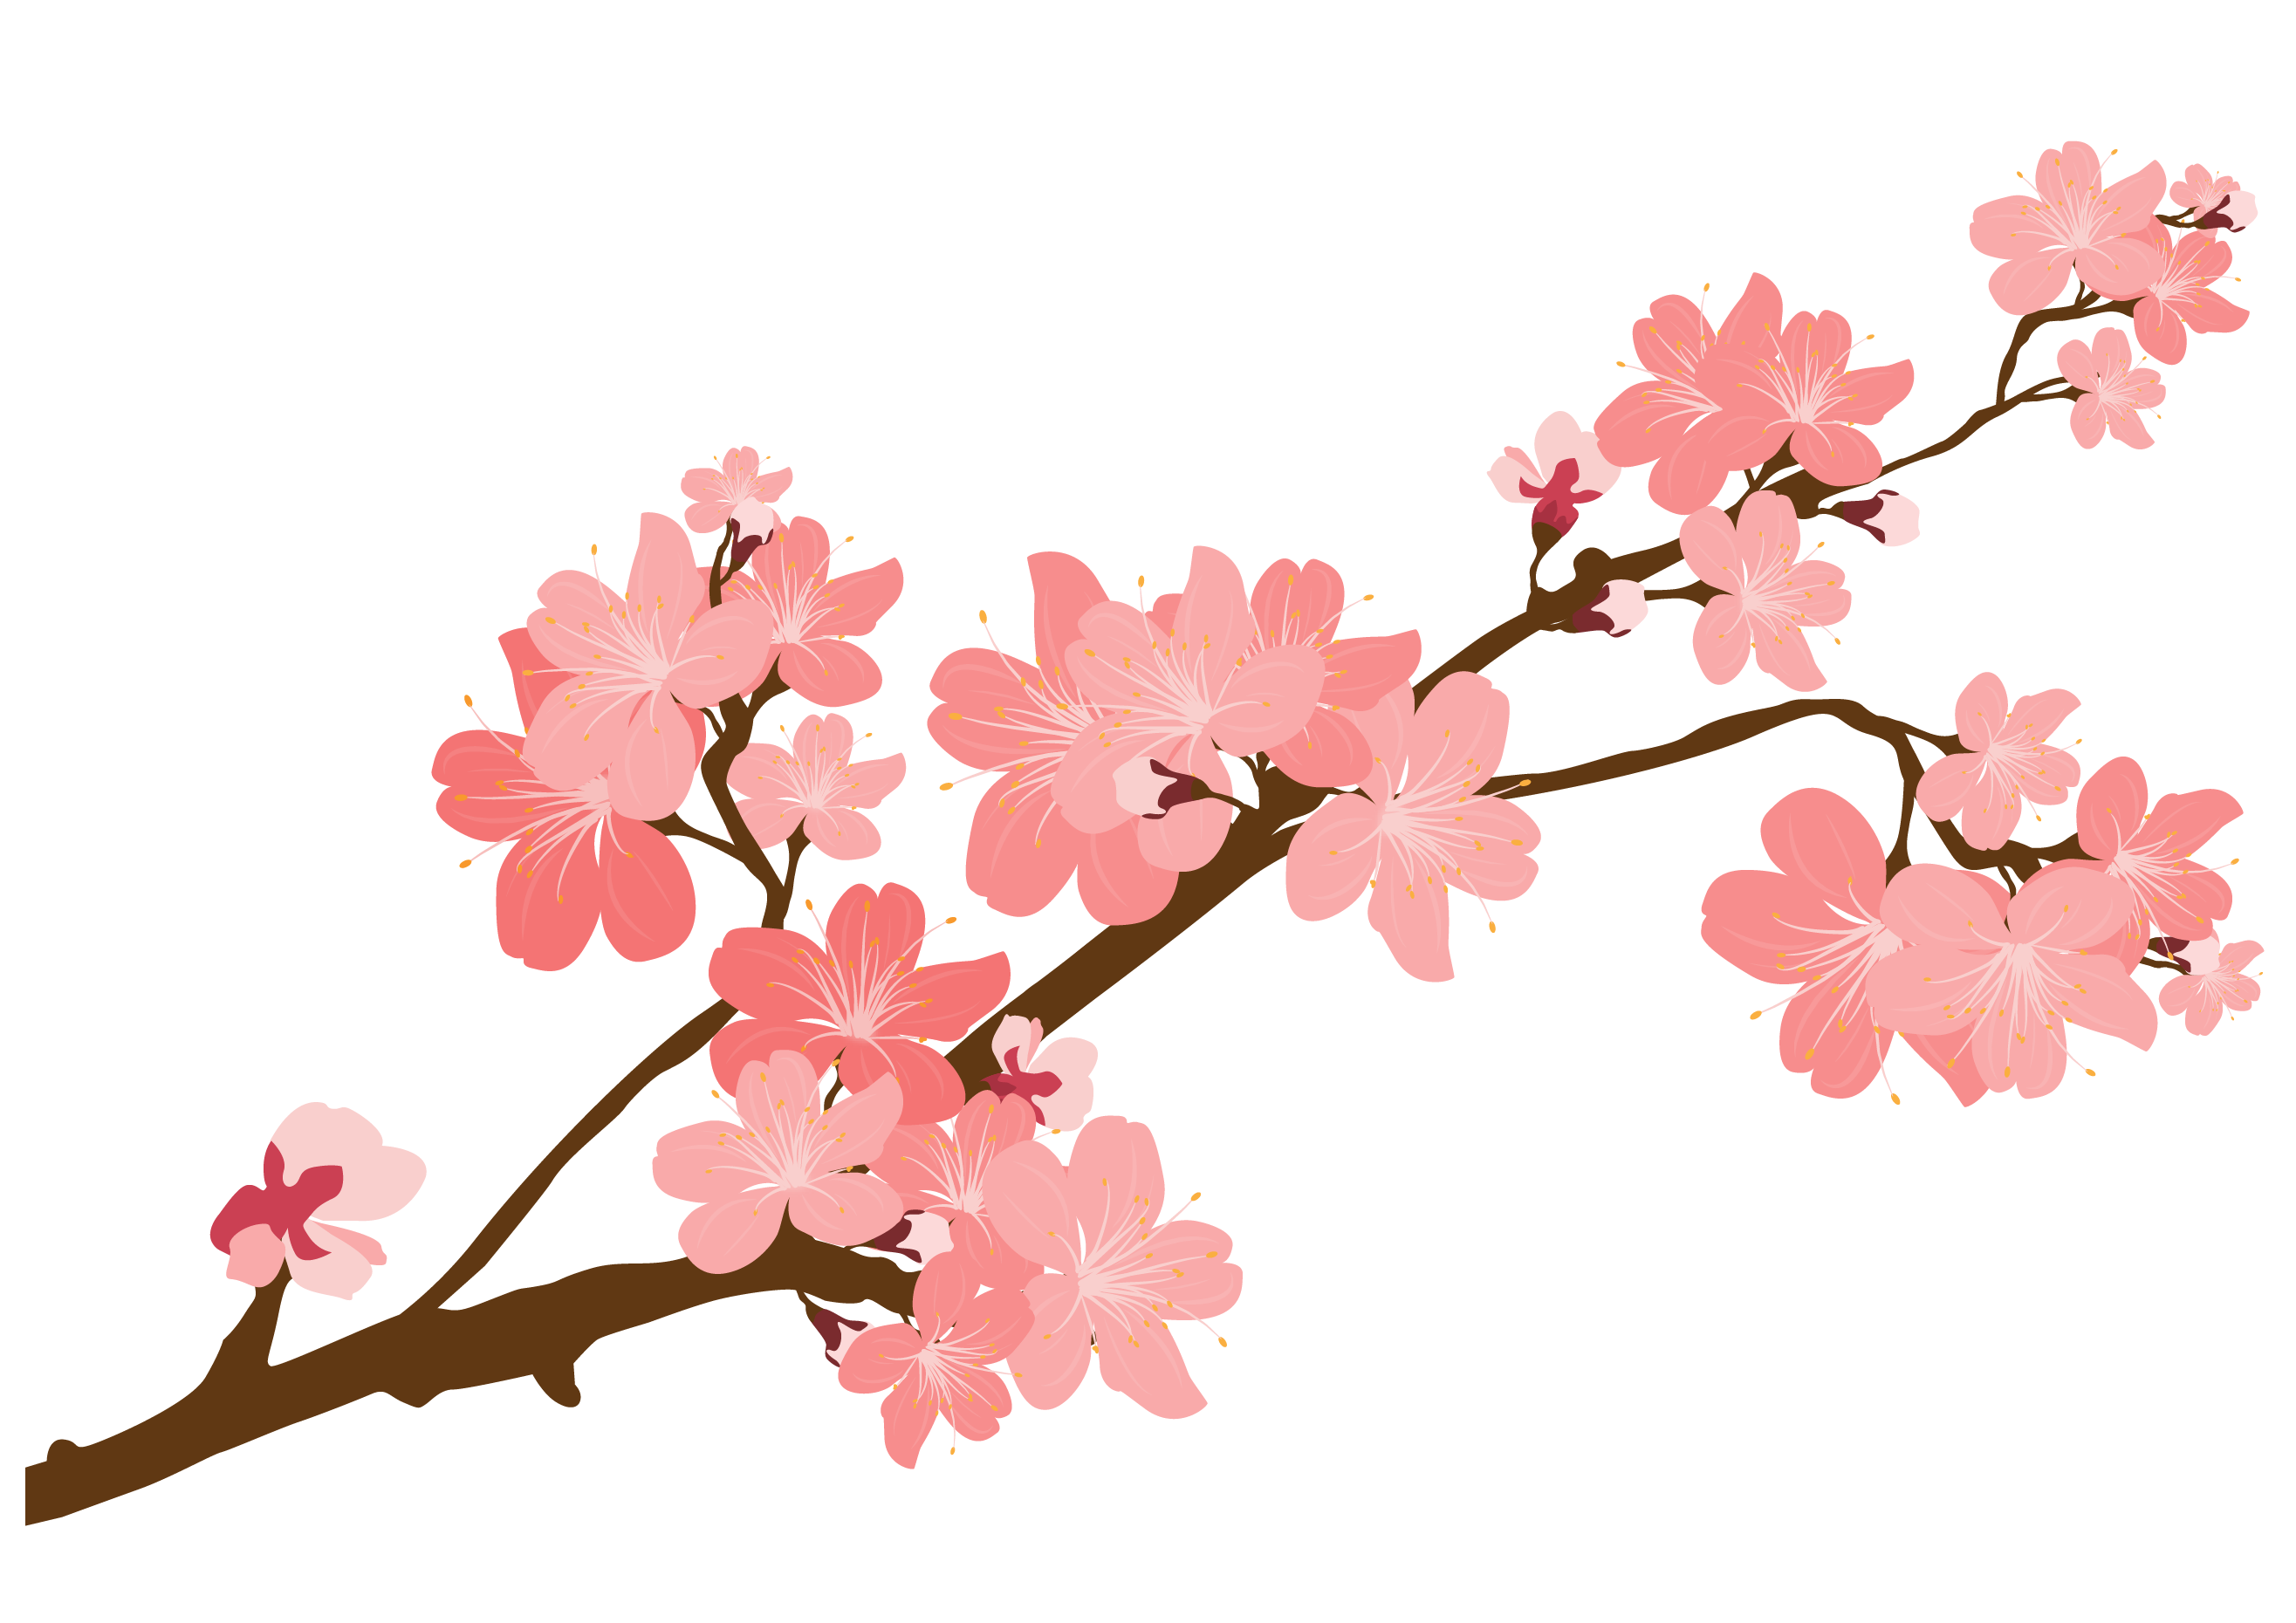 Japanese Cherry Blossom Flower Drawing